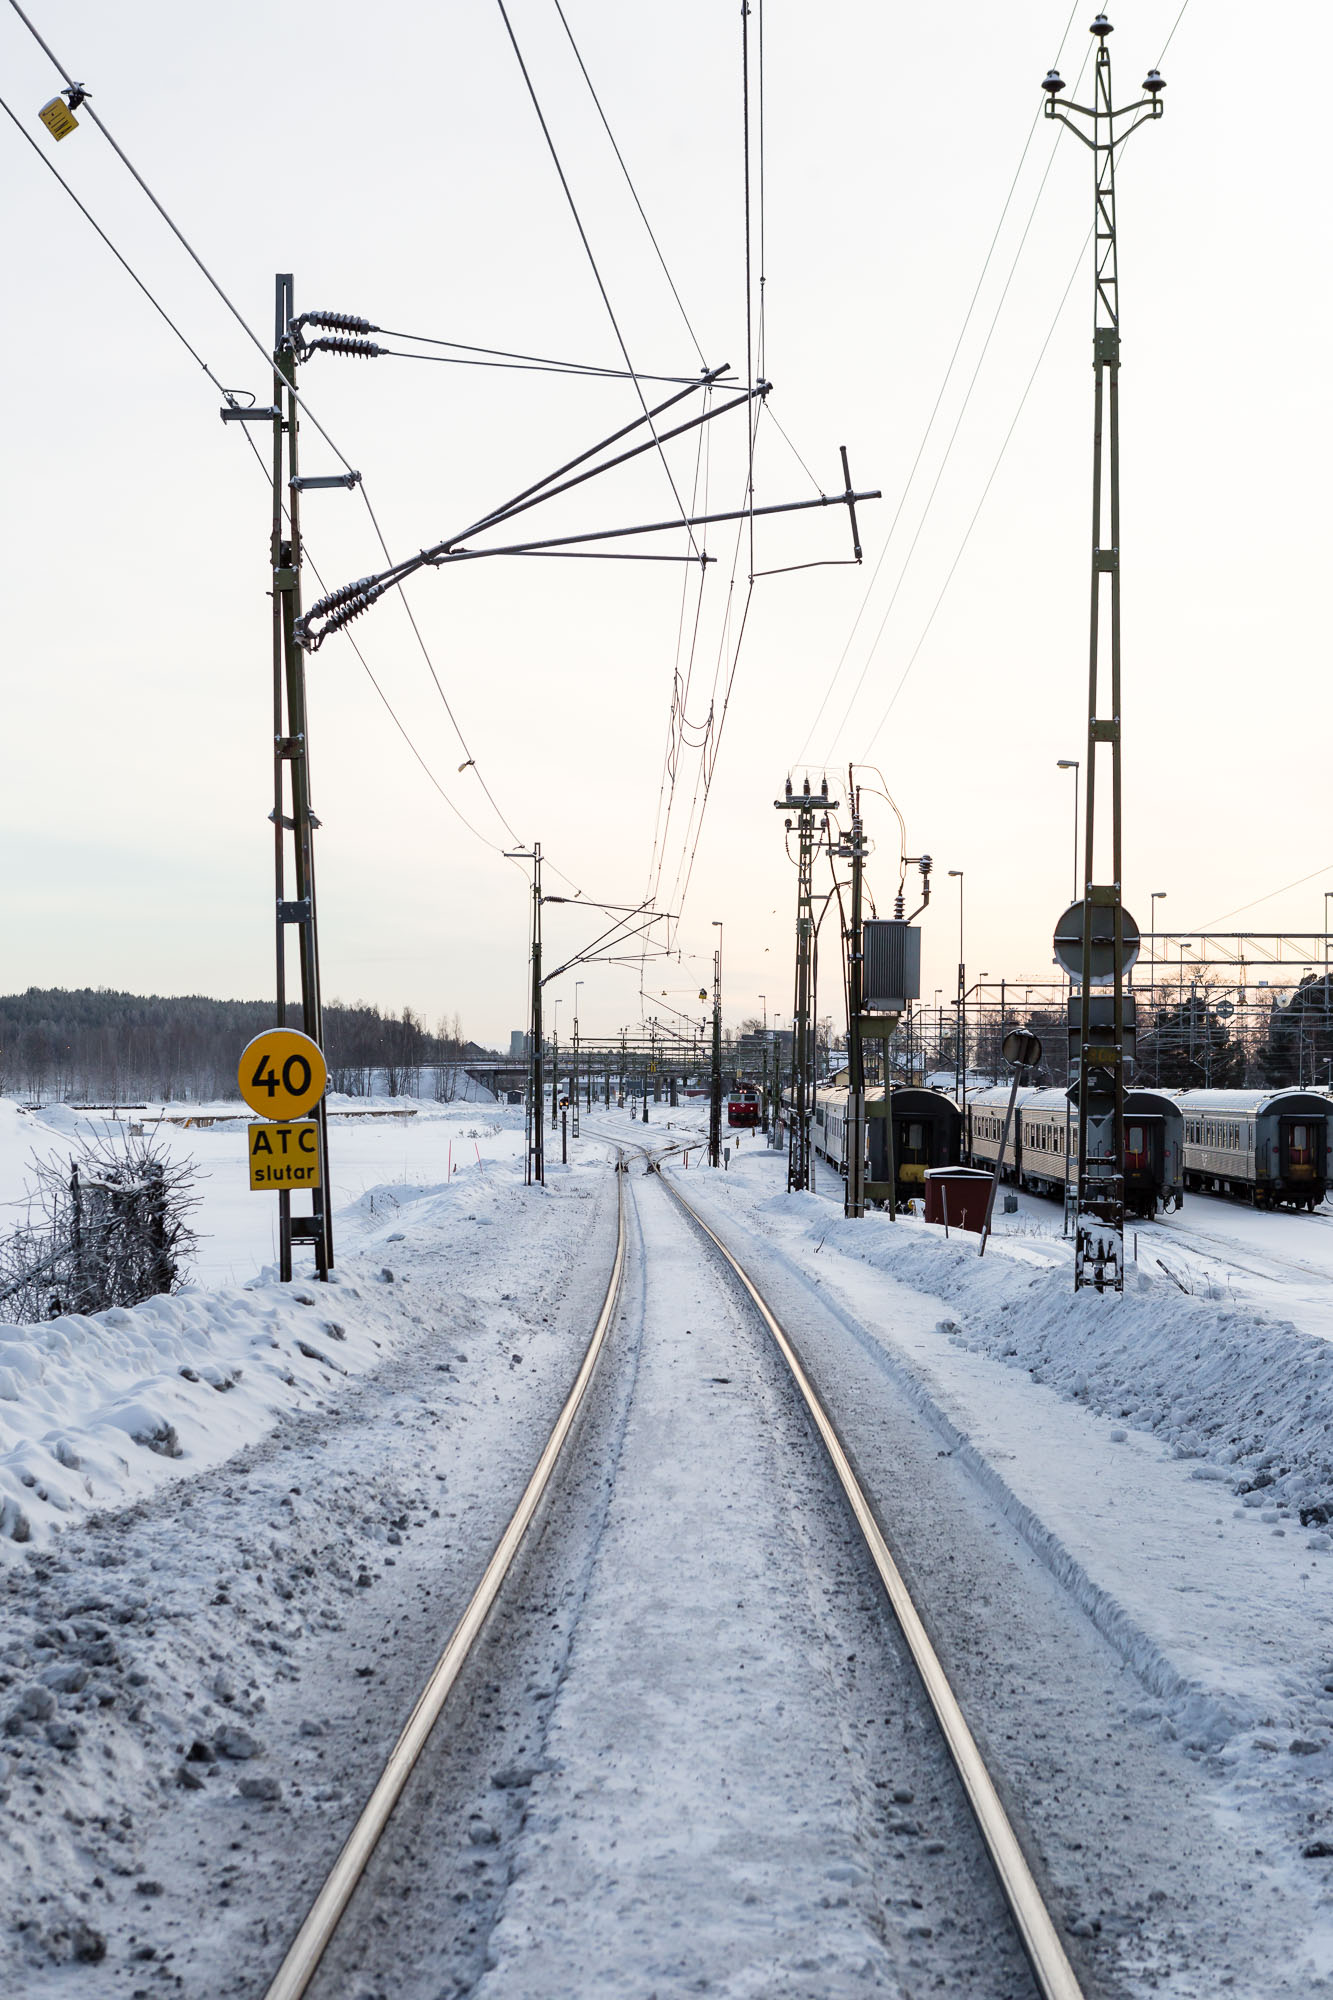 Train track, Luleå, Sweden January 2017, Ben Lee Photography